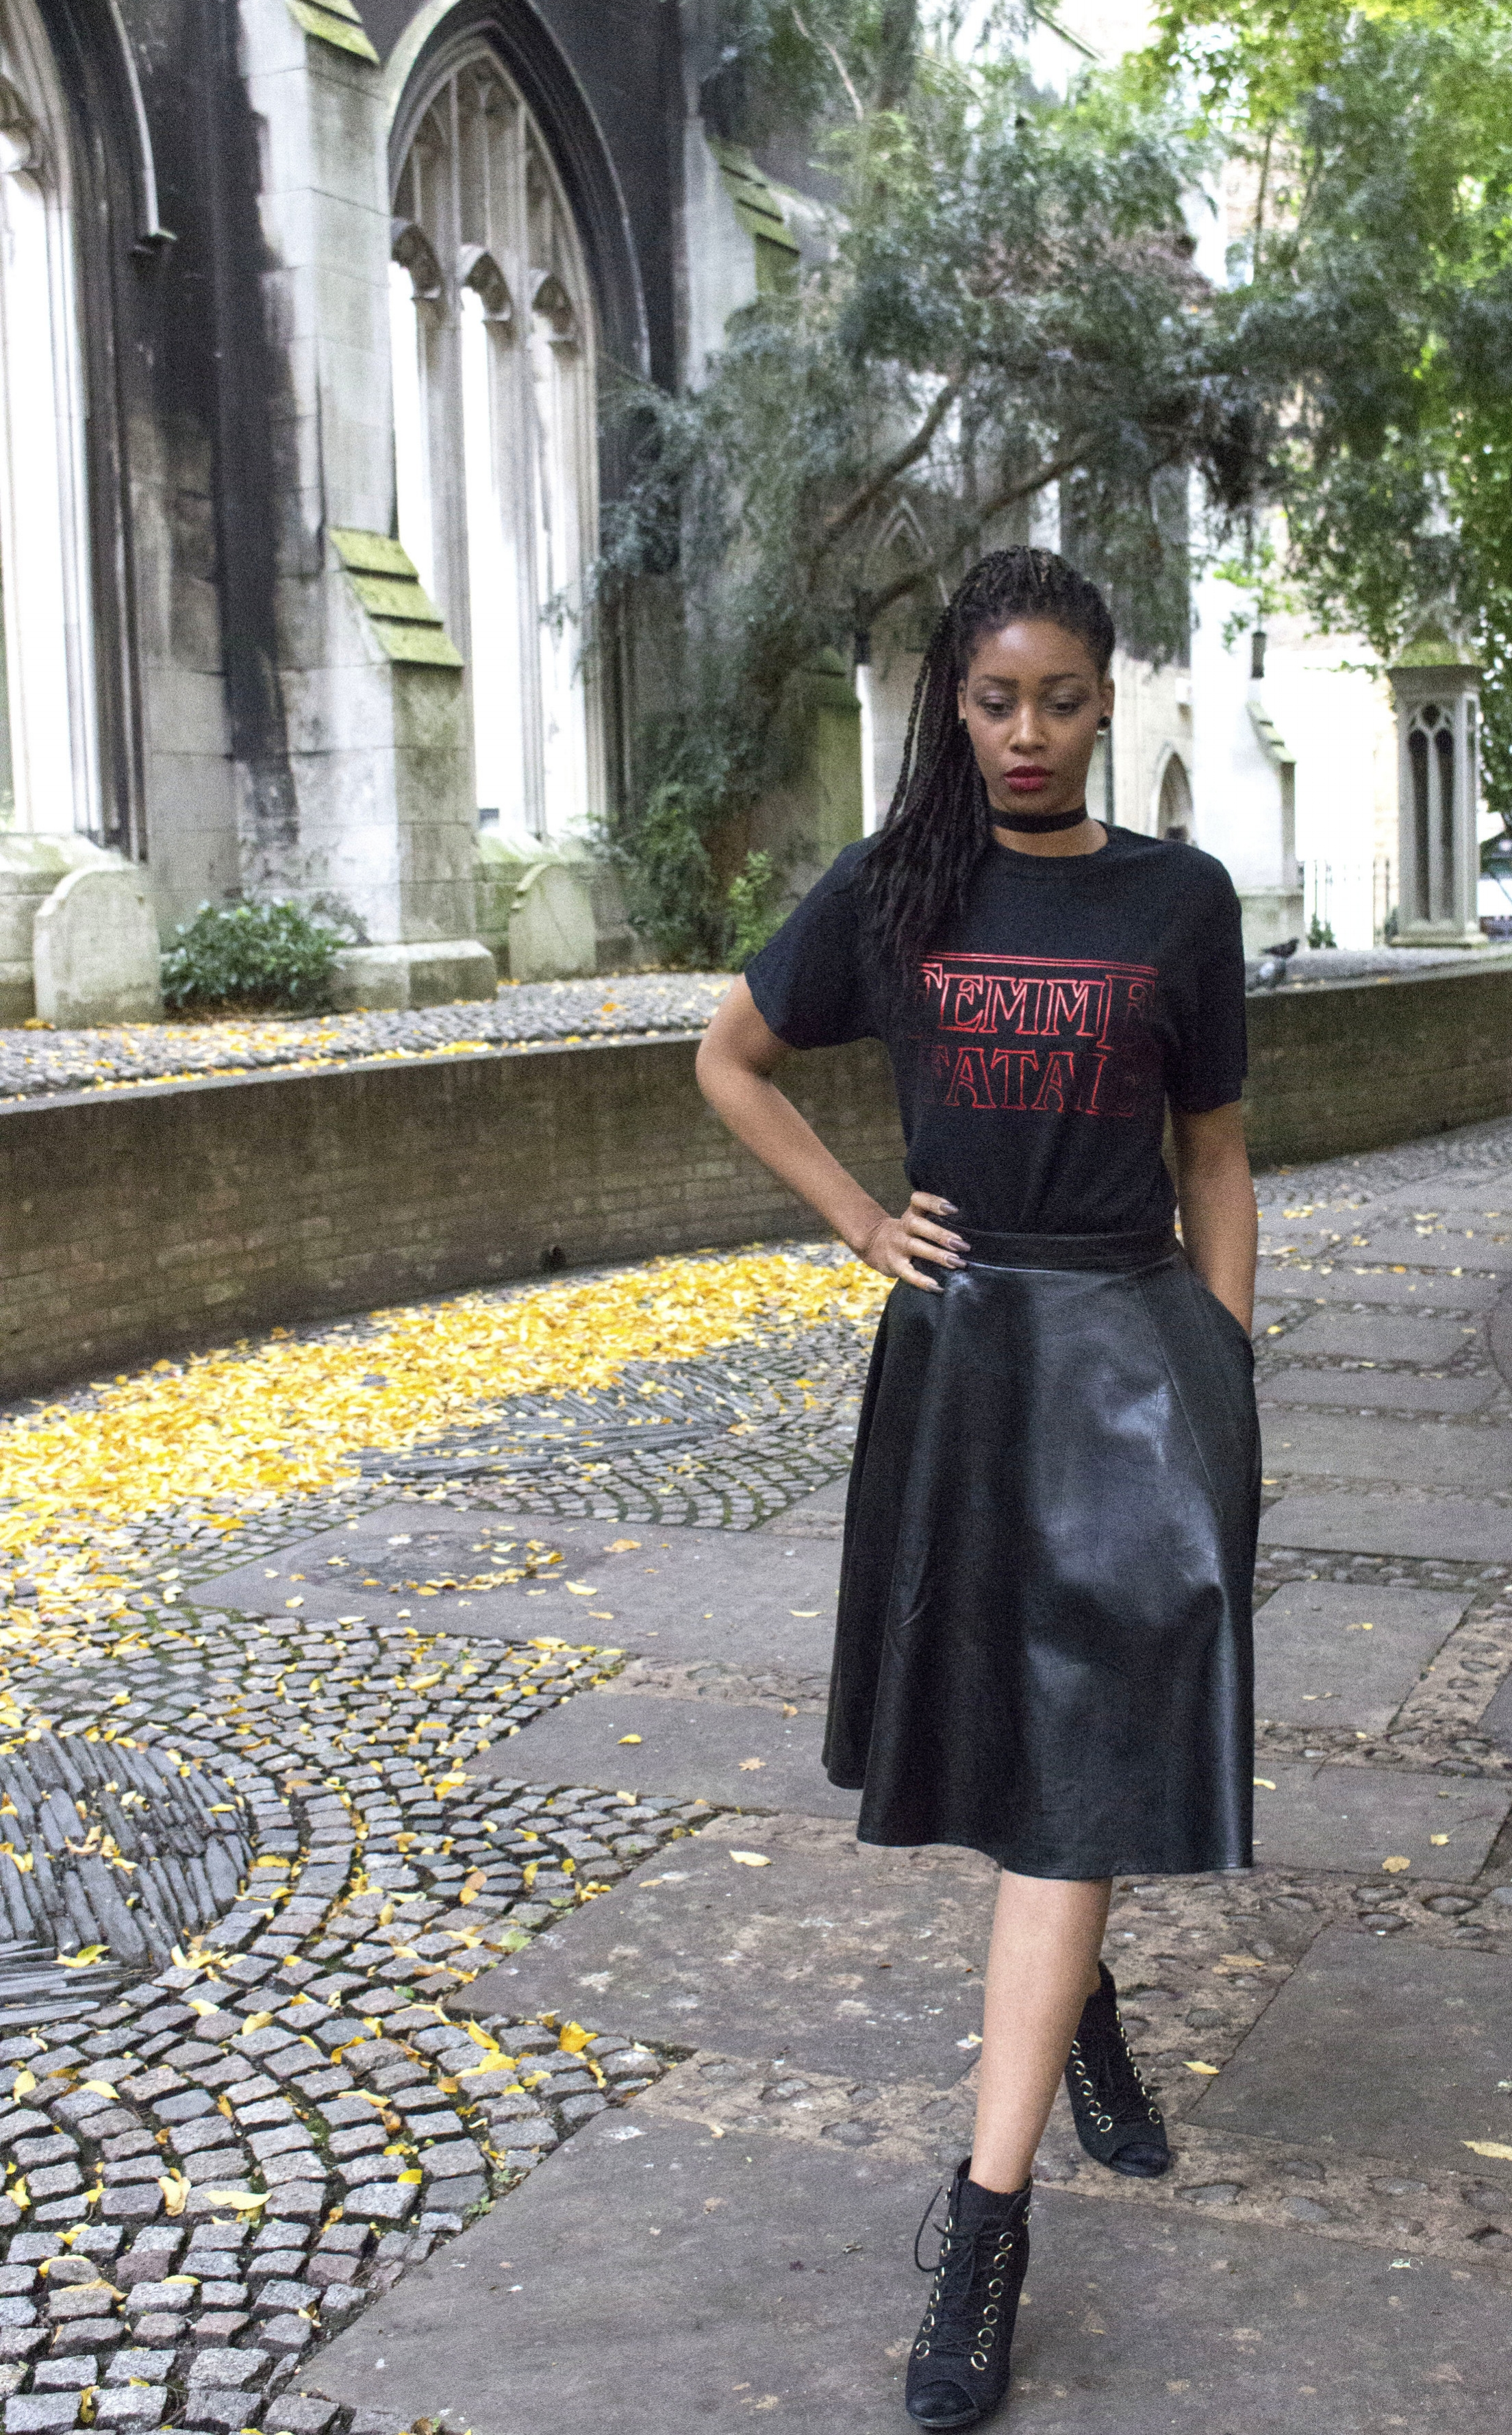 Black femme fatale t shirt black skirt black boots black choker for Autumn Winter 6.jpg